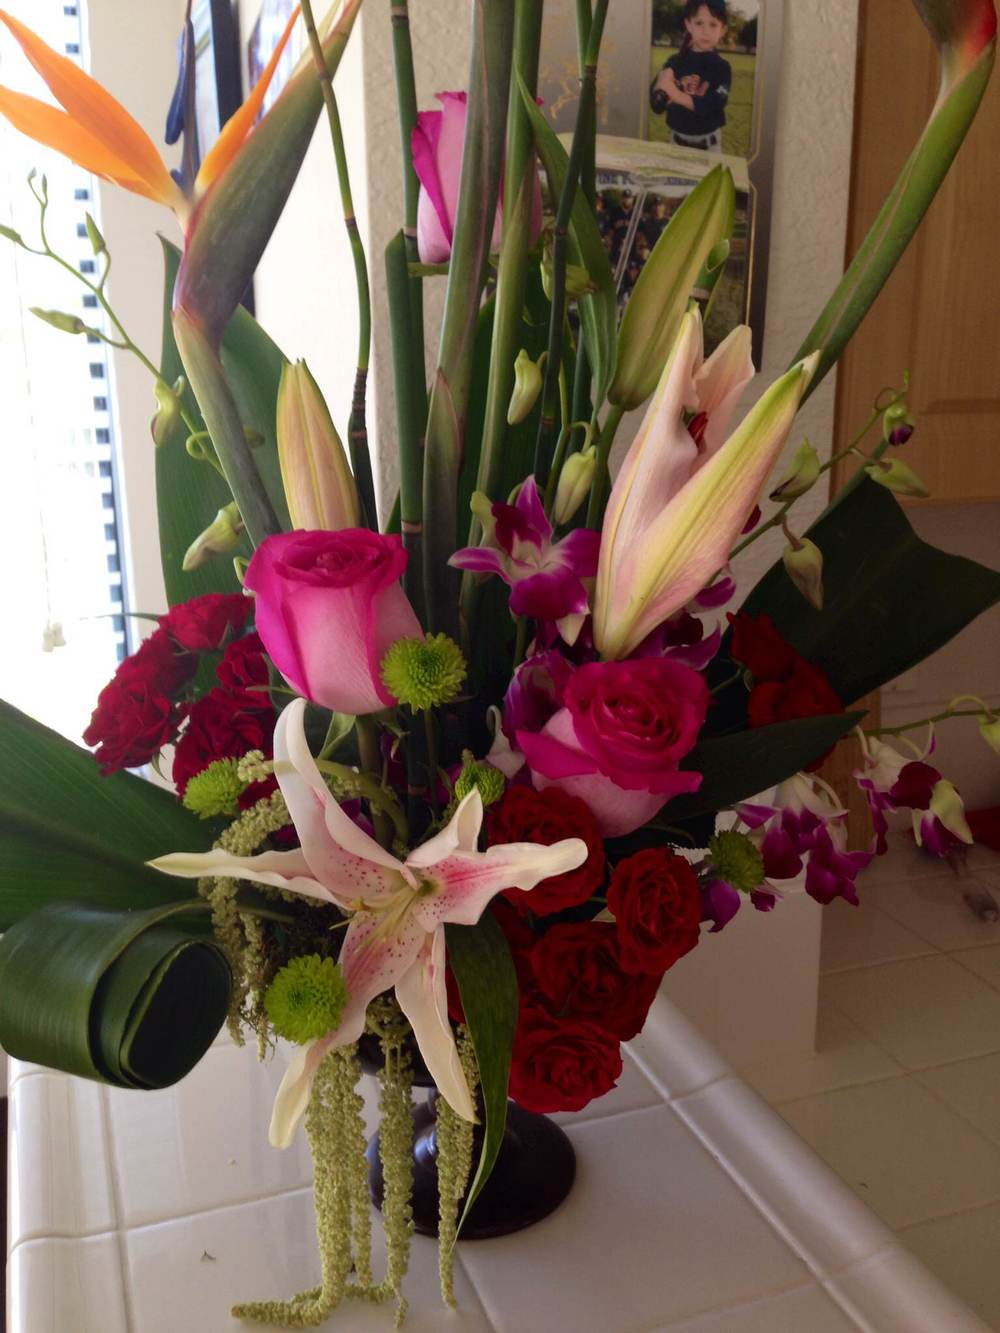 Just gorgeous. Such a thoughtful and kind surprise.